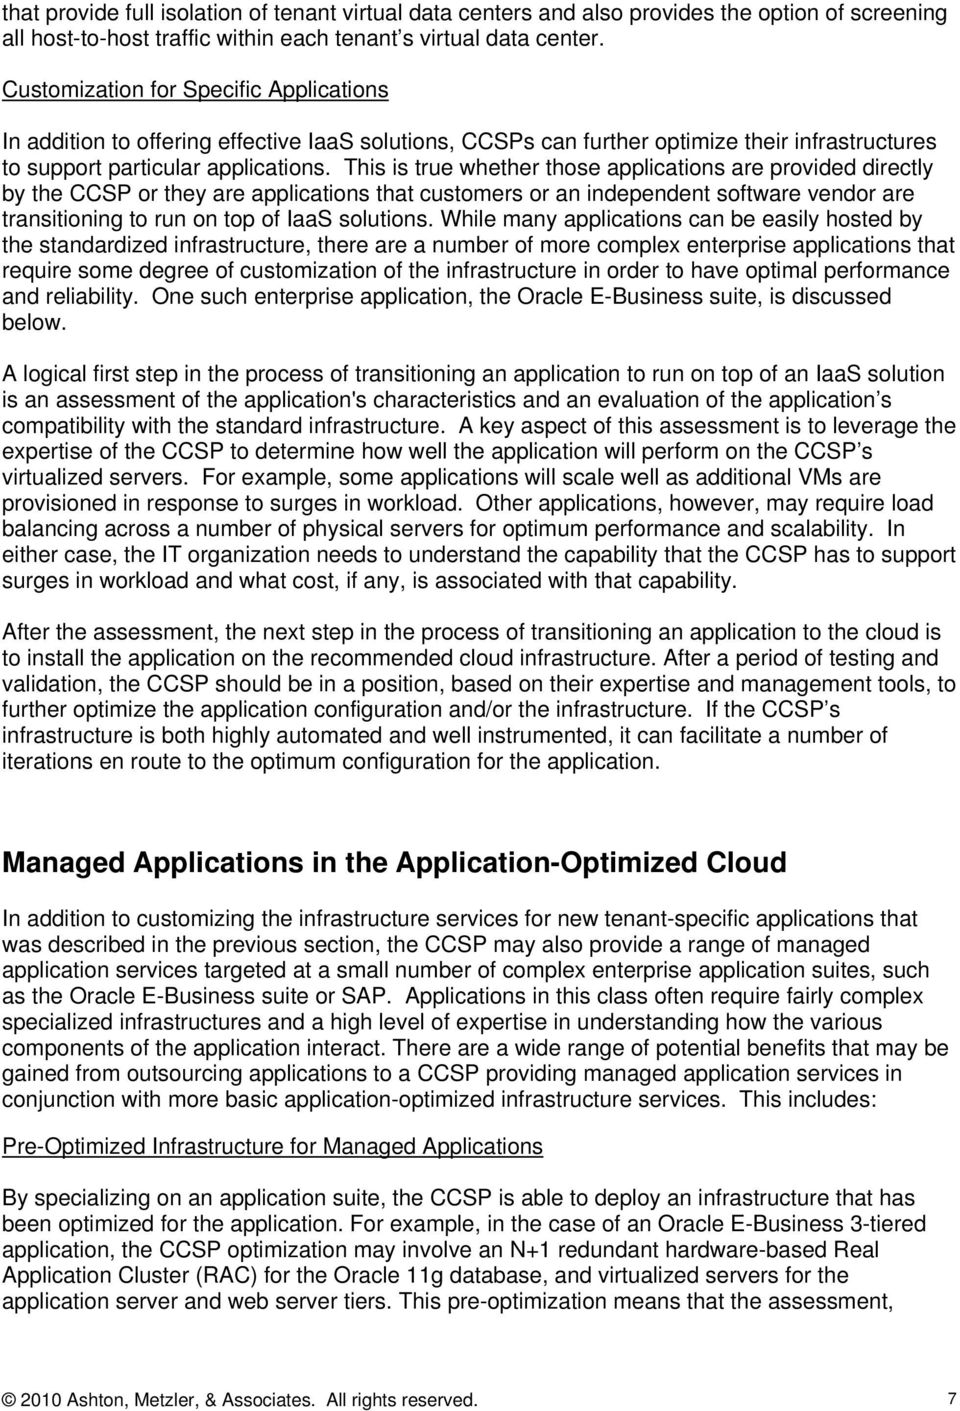 This is true whether those applications are provided directly by the CCSP or they are applications that customers or an independent software vendor are transitioning to run on top of IaaS solutions.